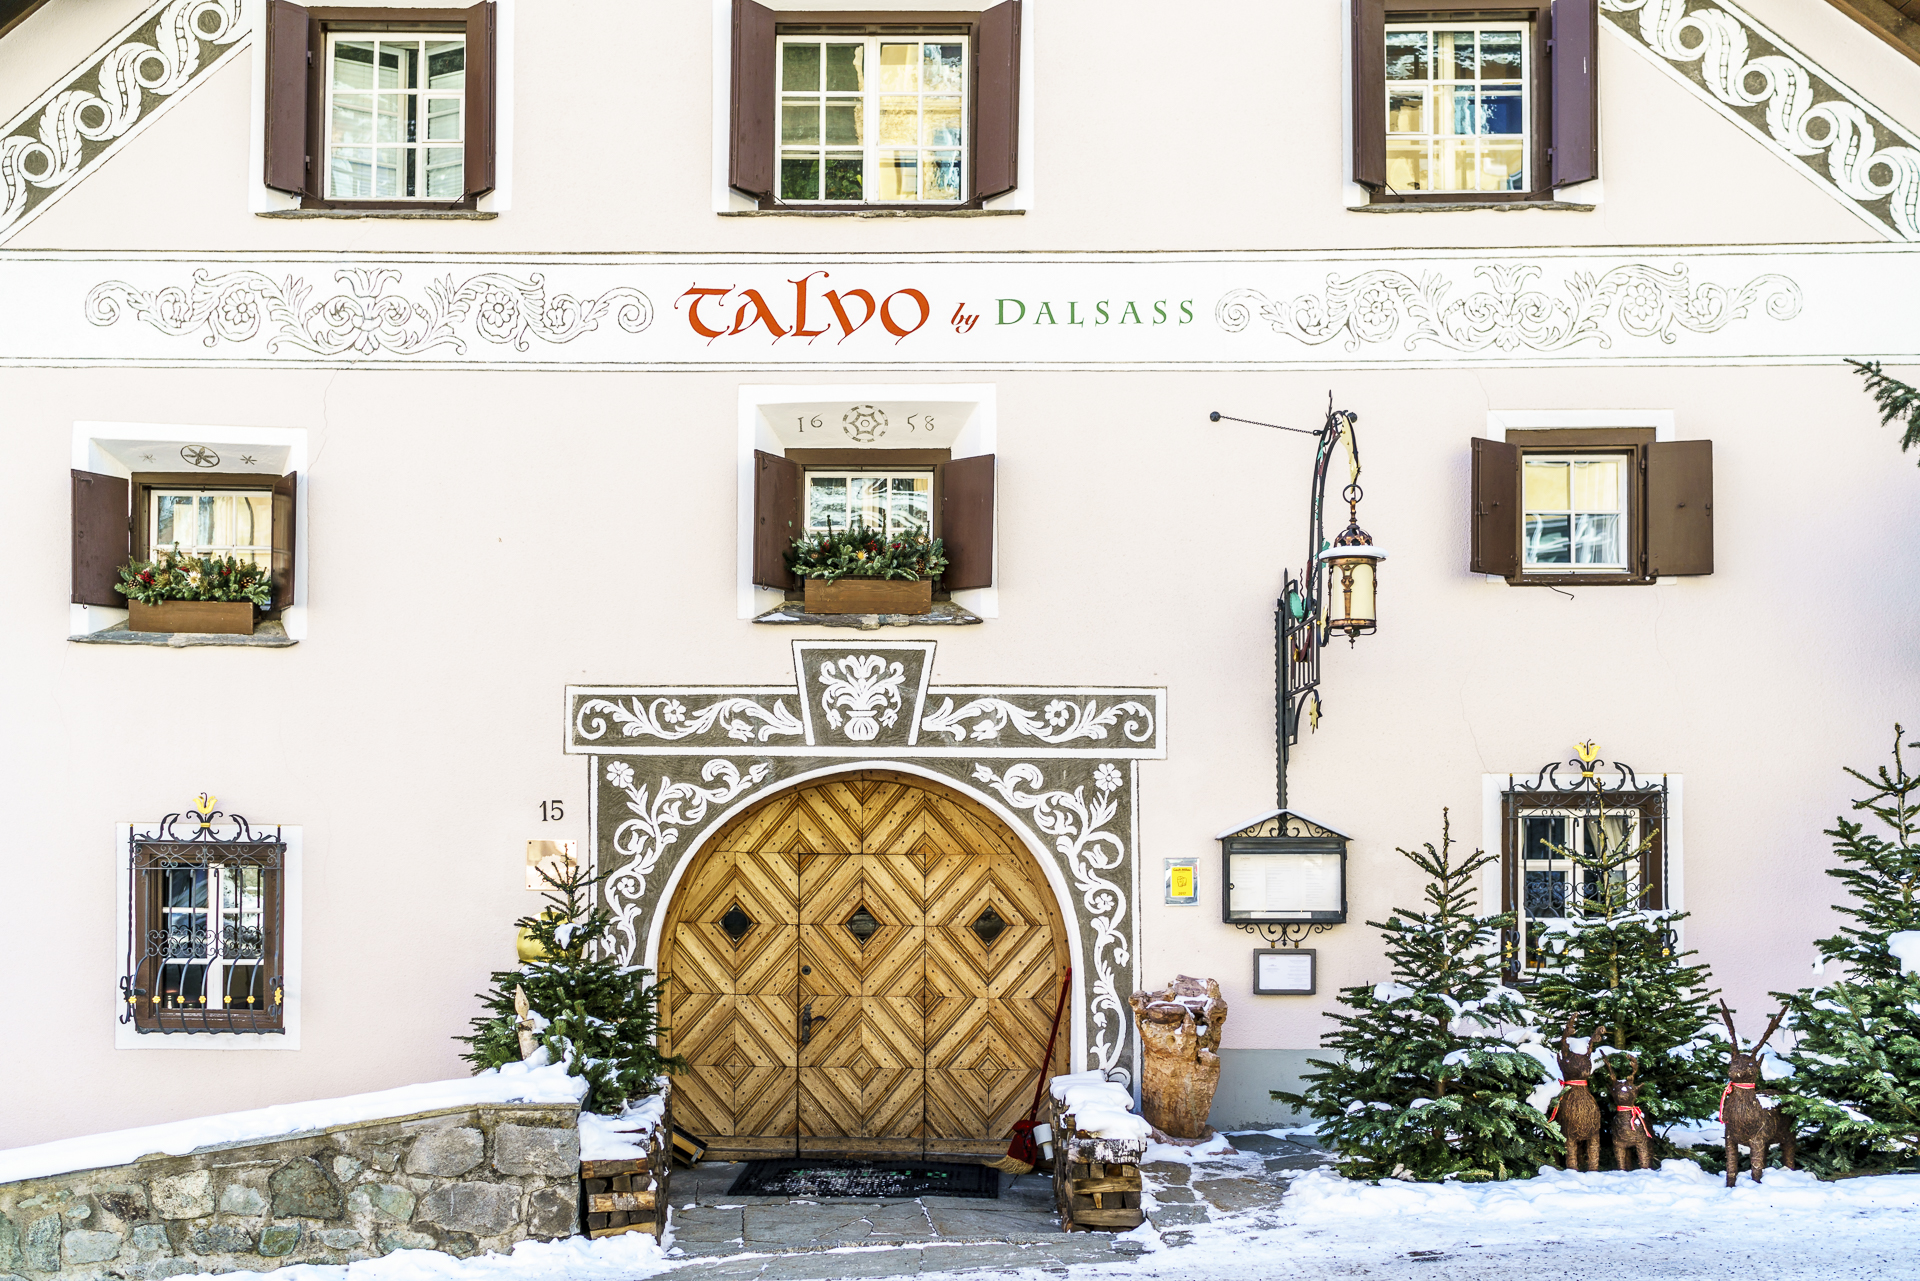 Talvo by Dalsass Restaurant